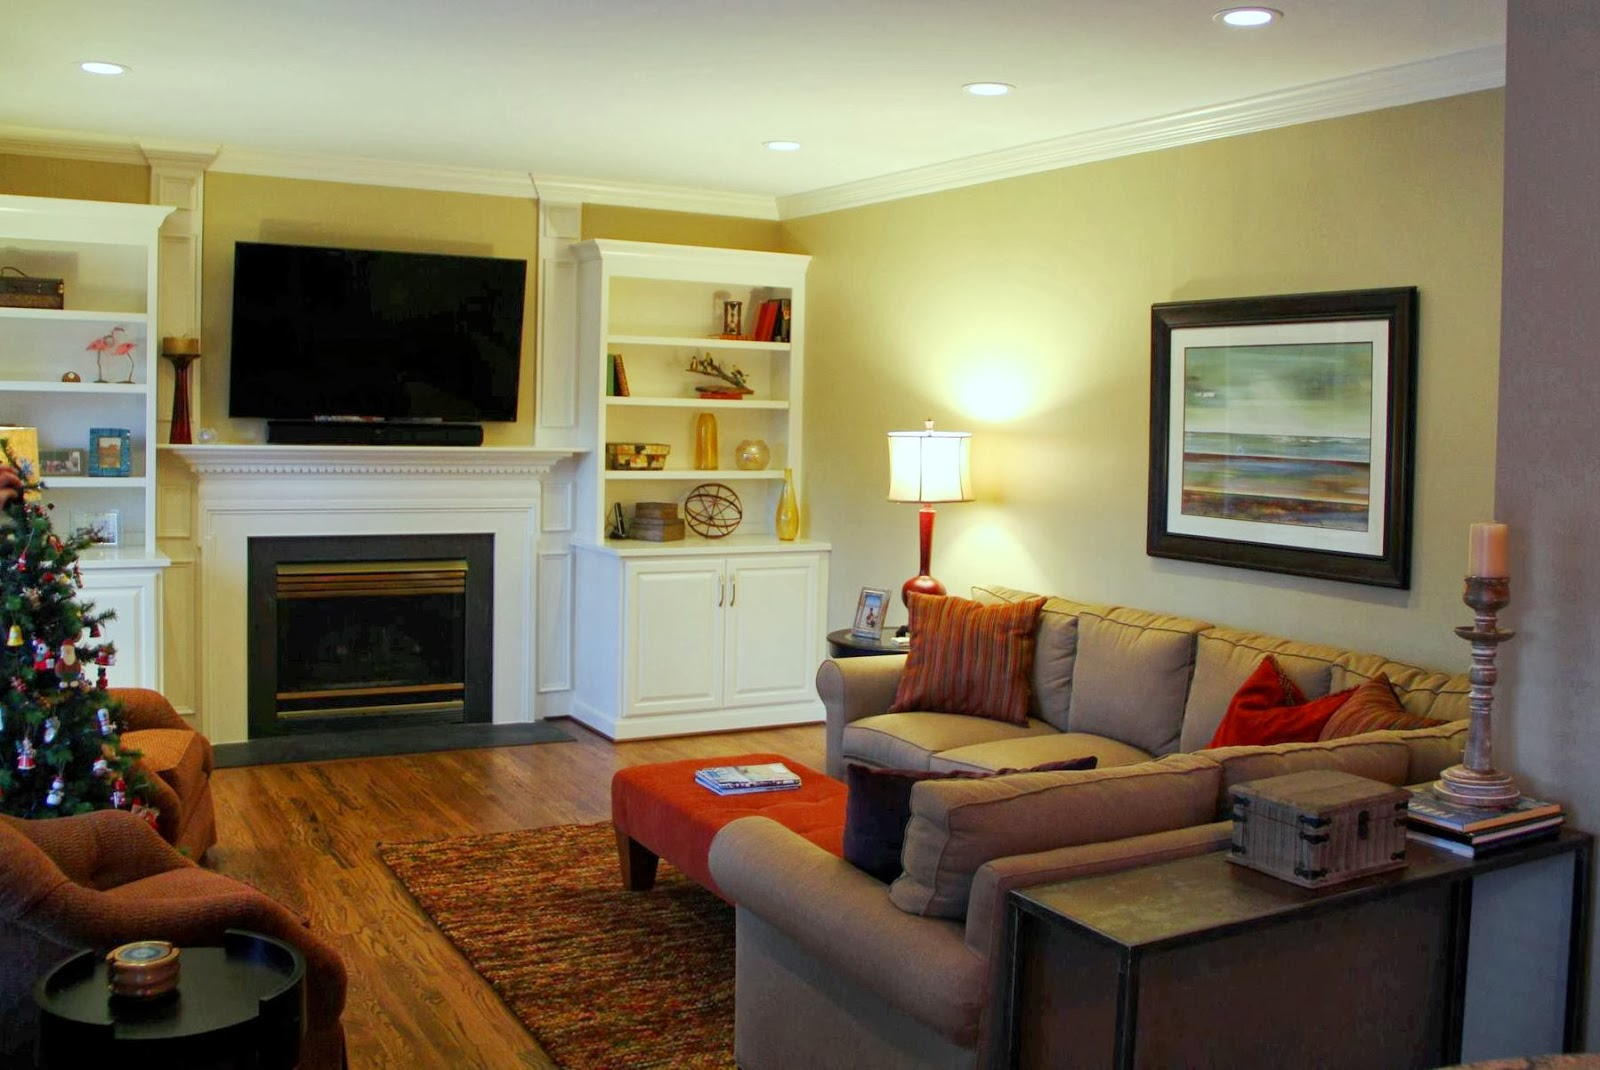 How to maximize seating in a family room for TV viewing